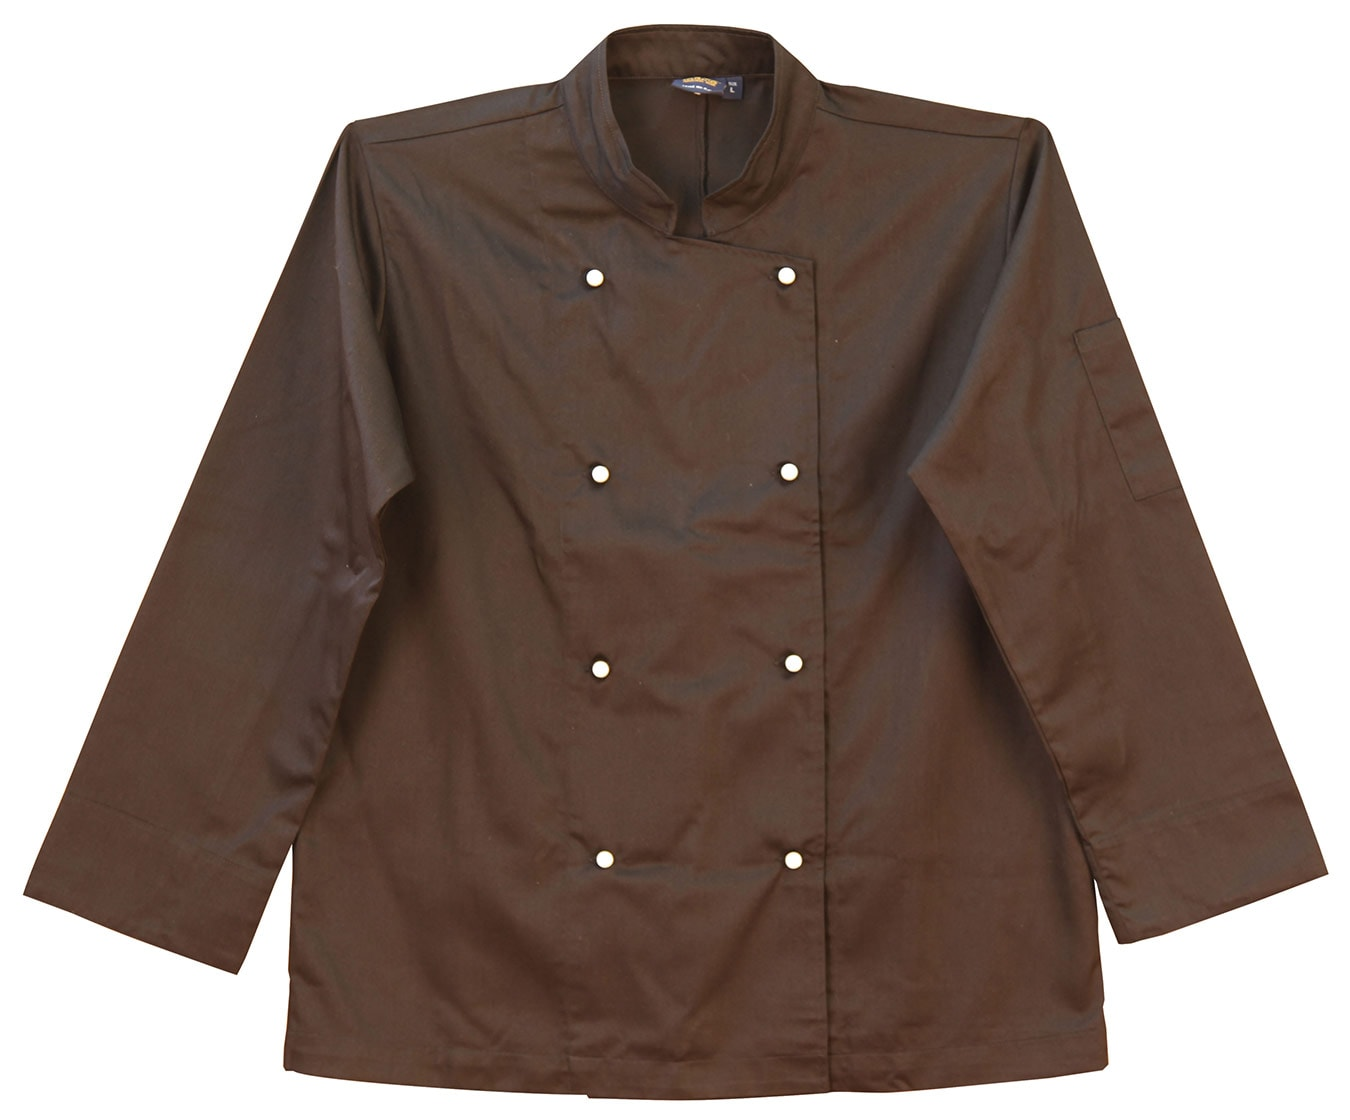 CJ01 Traditional Chef's Long Sleeve Jacket